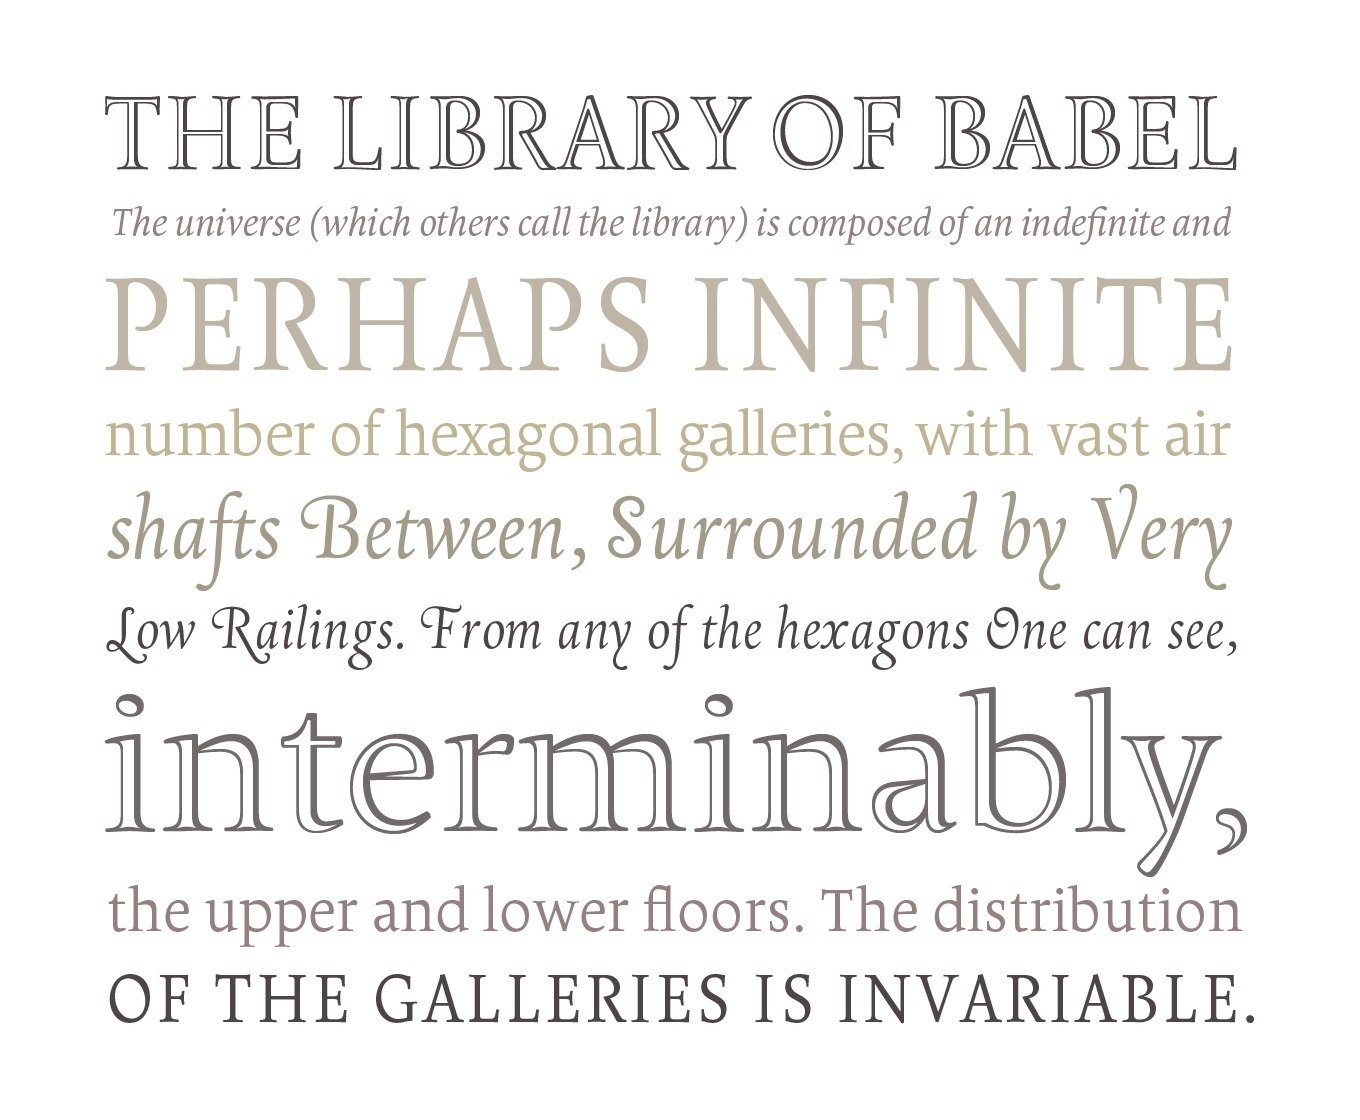 The Borges family includes 15 fonts: a text set of roman, cursive and smallcaps in 4 weights, plus two titling fonts and a contemporary elegant chancery.